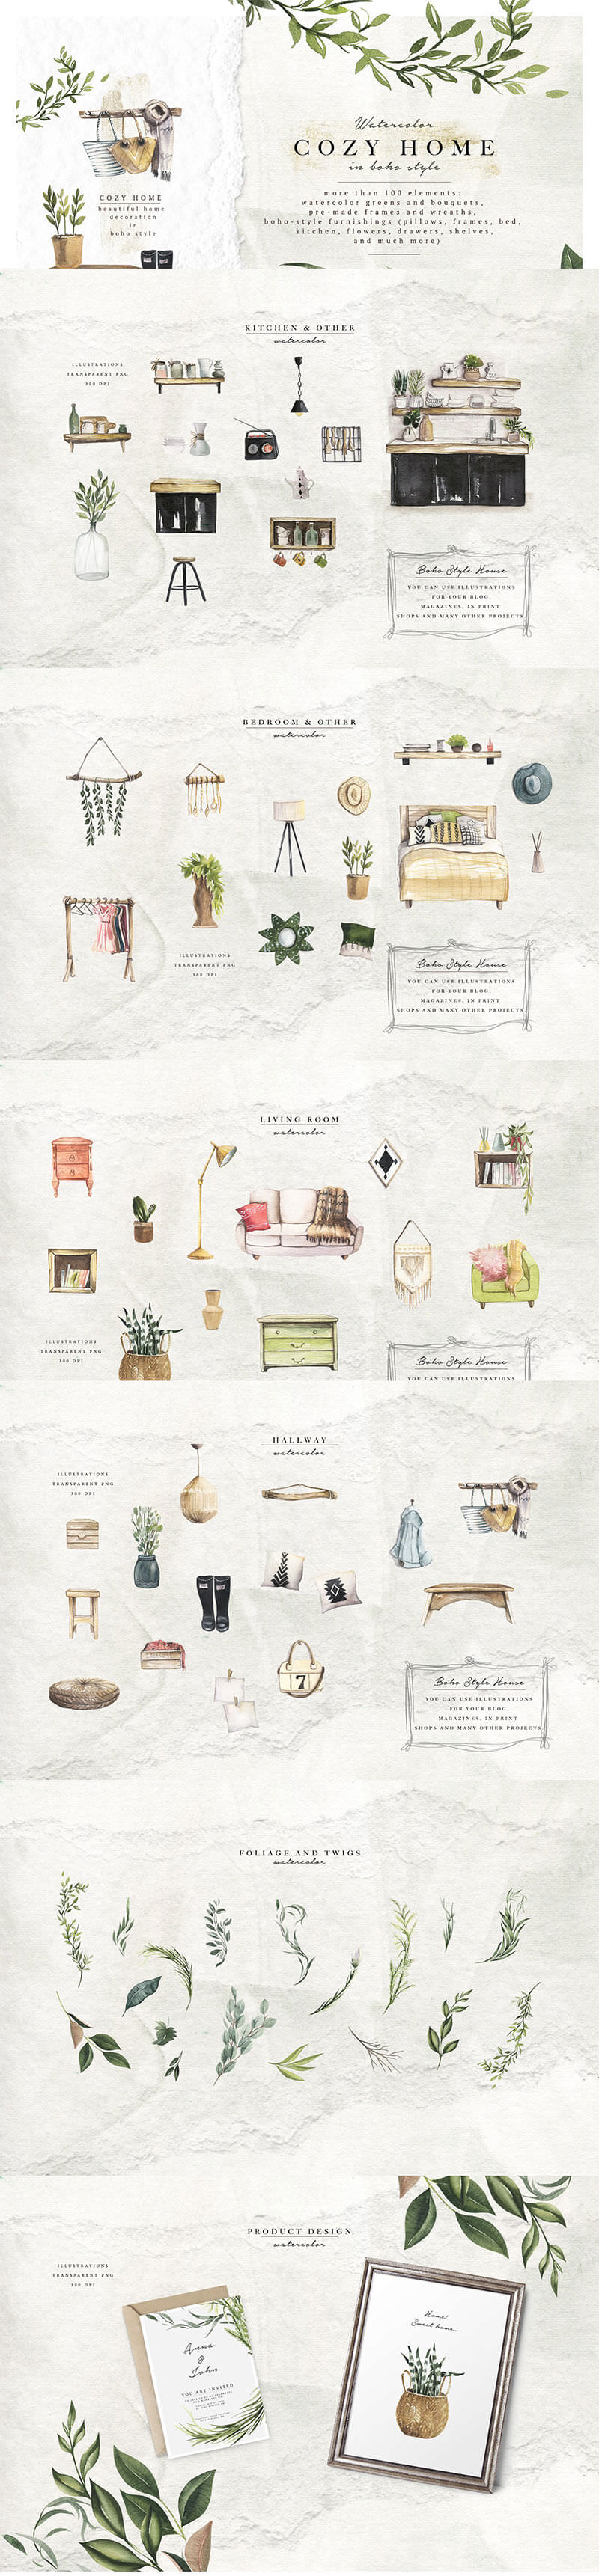 creative-designers-complete-collection-012-a